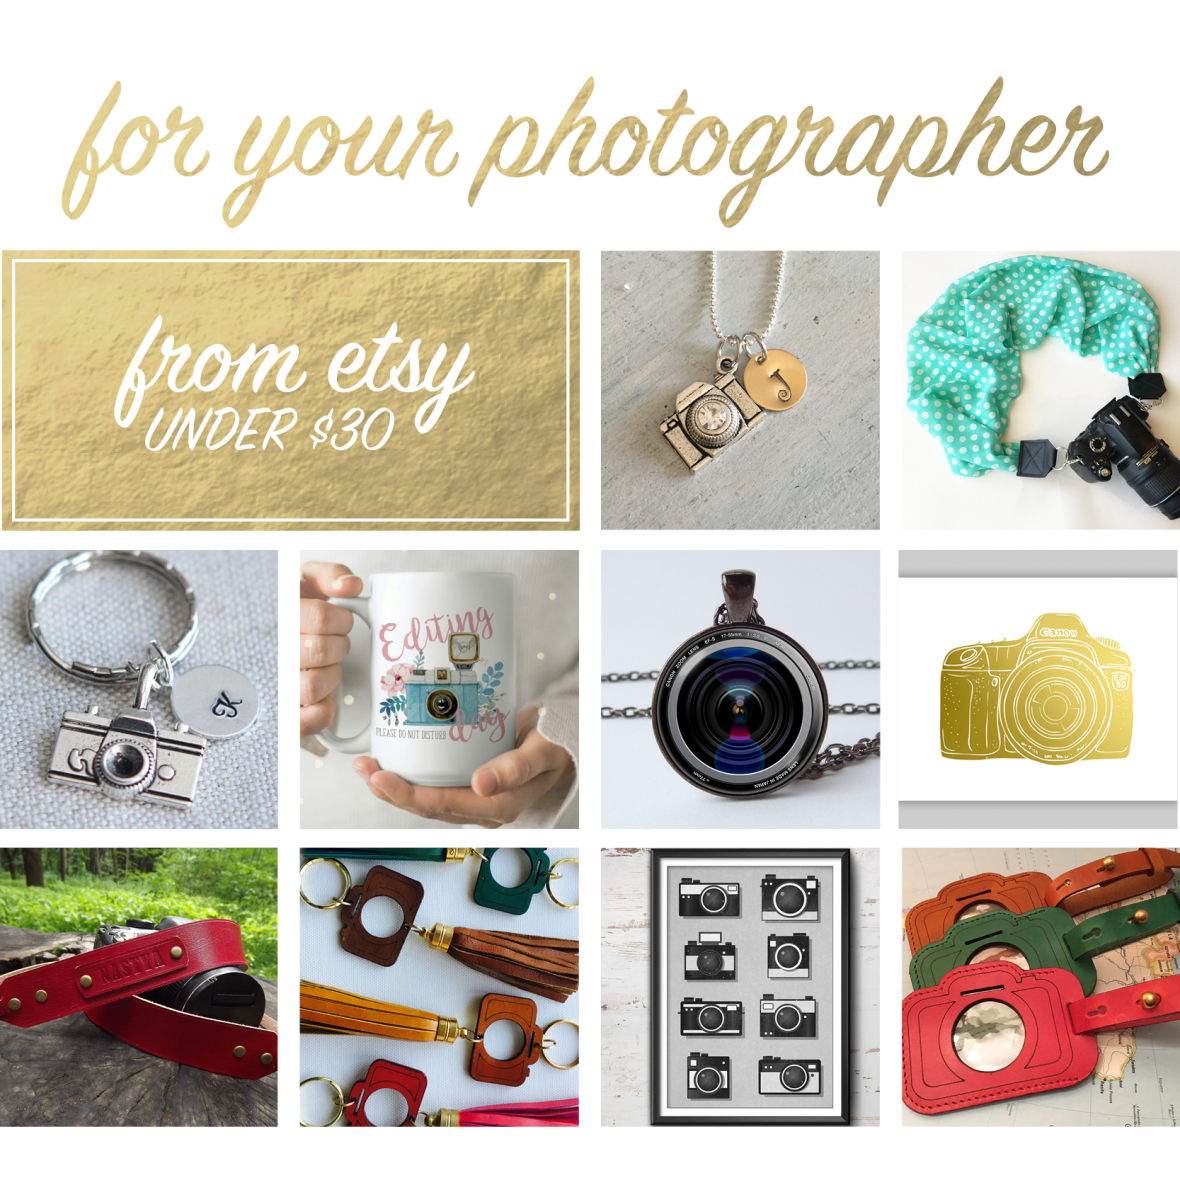 Handmade gifts for photographers from Etsy